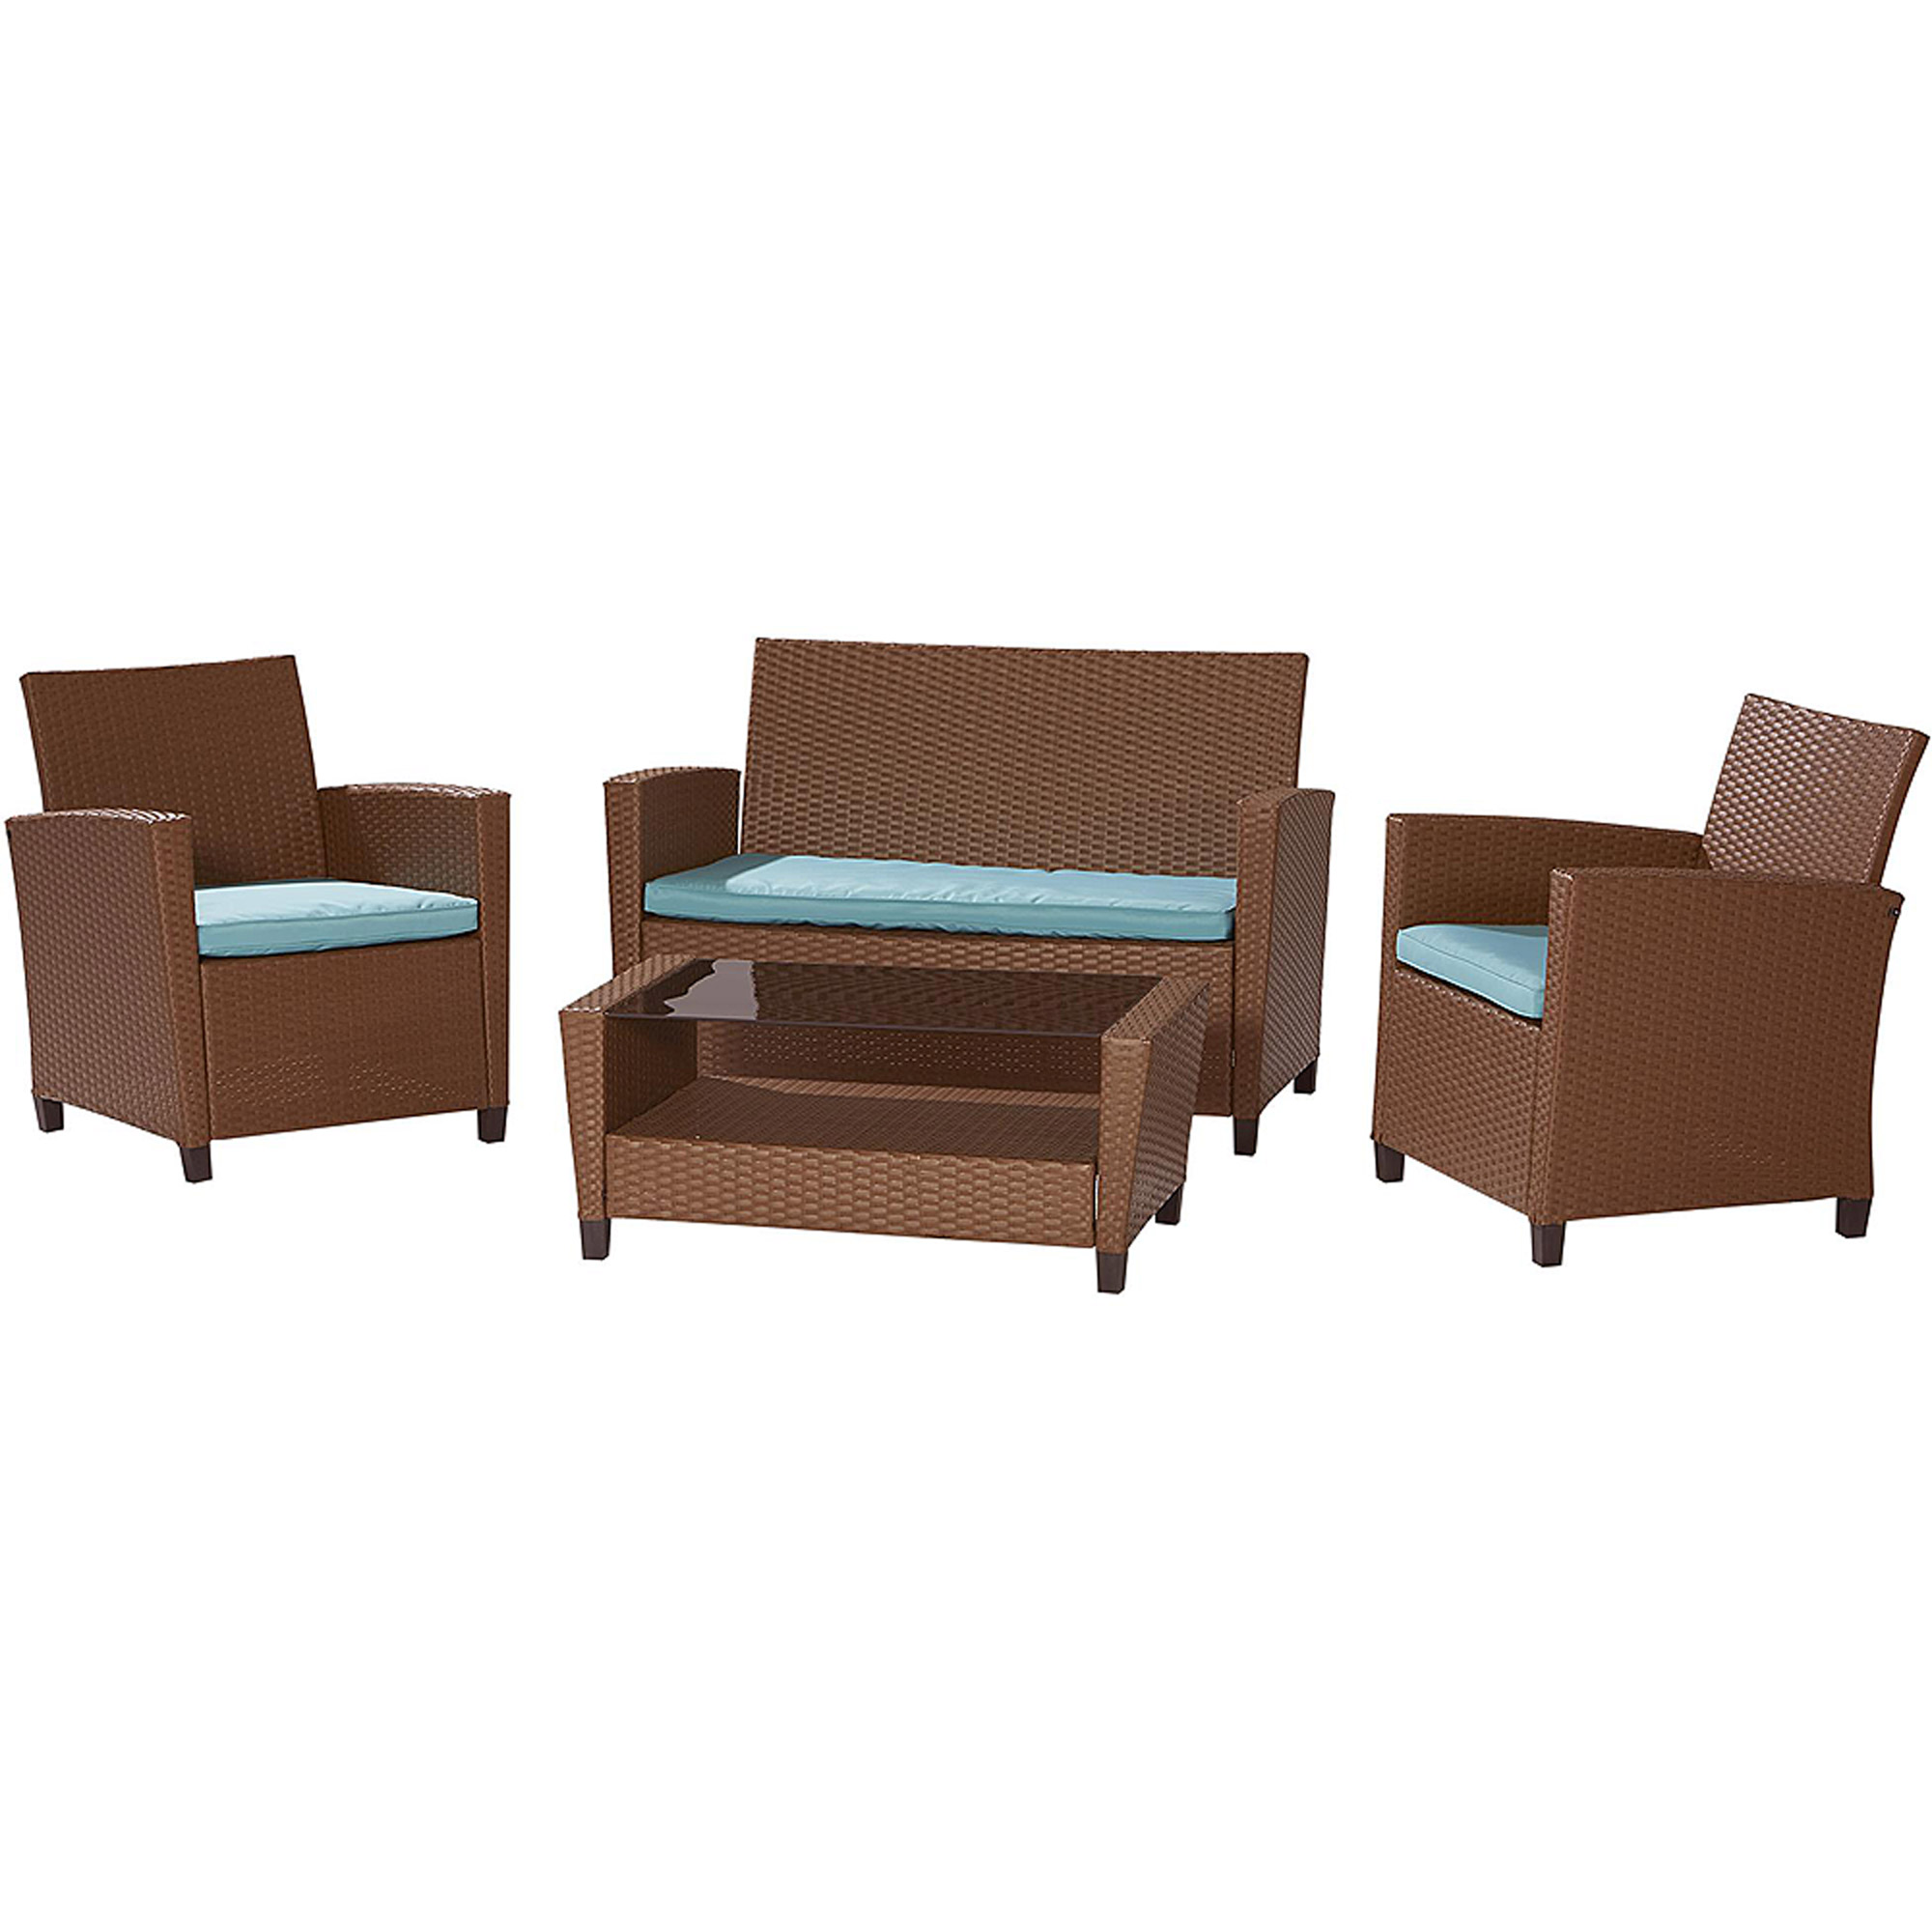 Resin Patio Furniture Happy Crosley Palm Harbor Allweather Resinwicker Loveseat With Cushions